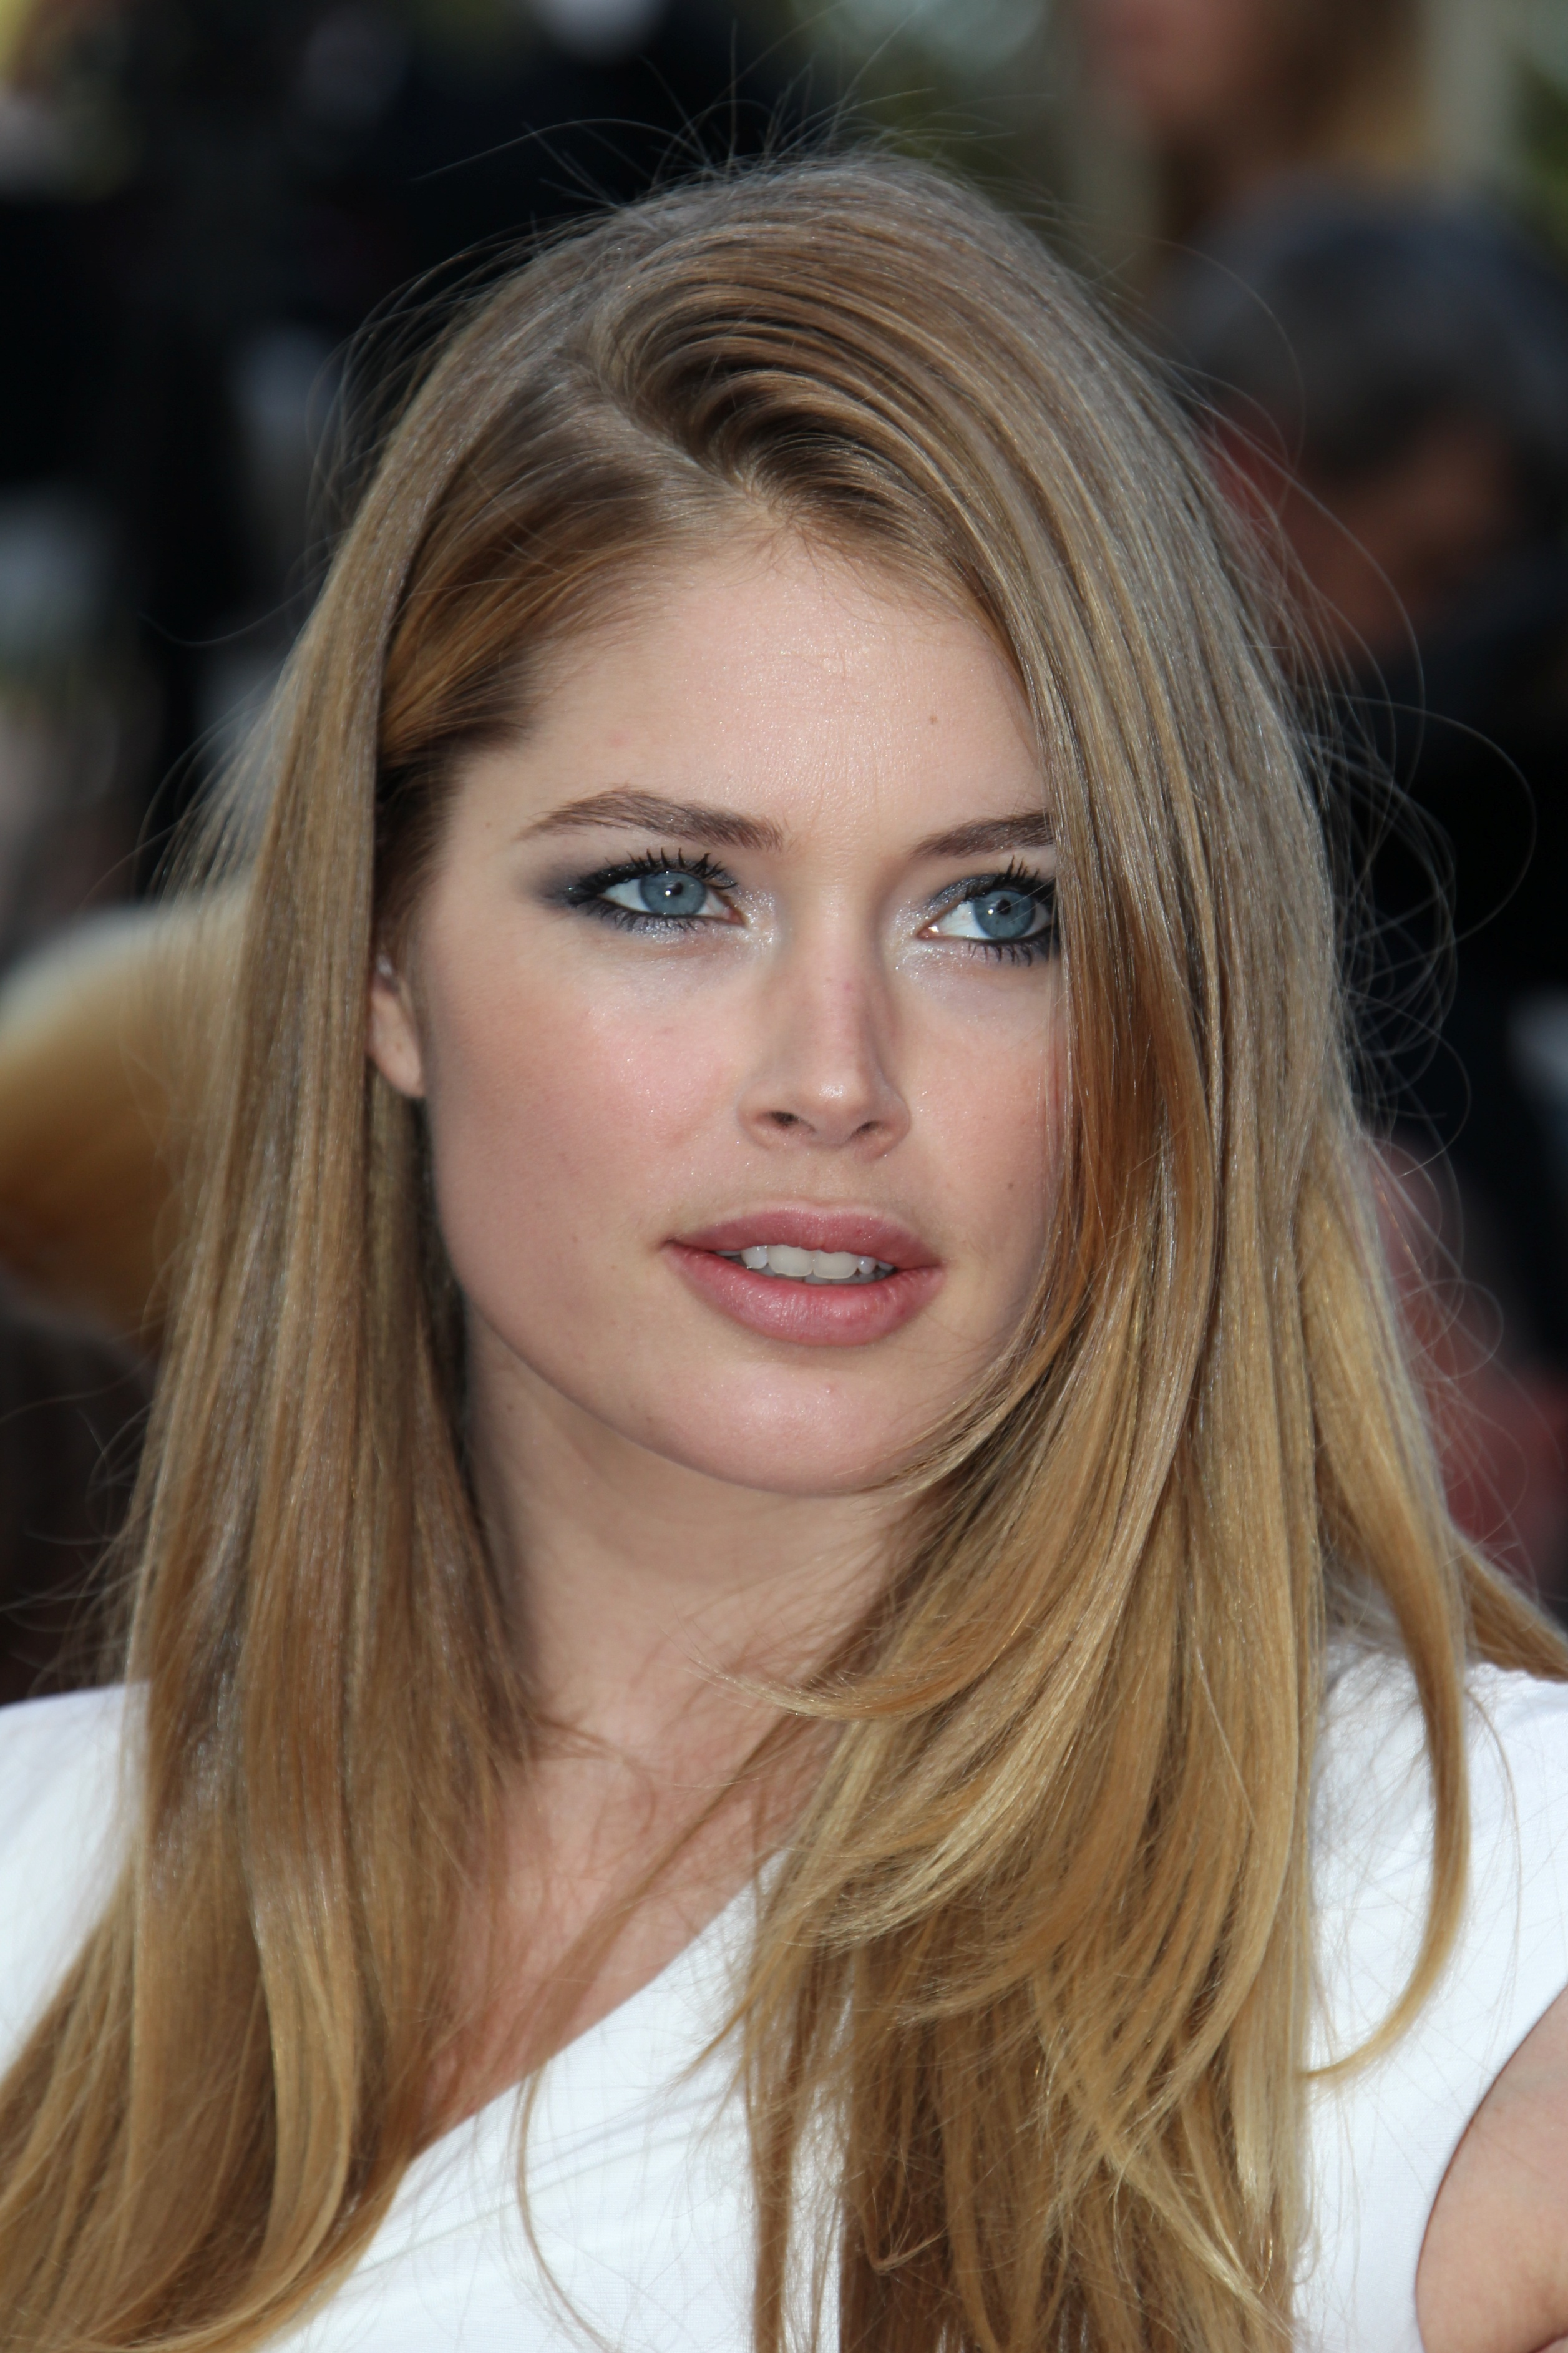 doutzen kroes tumblr